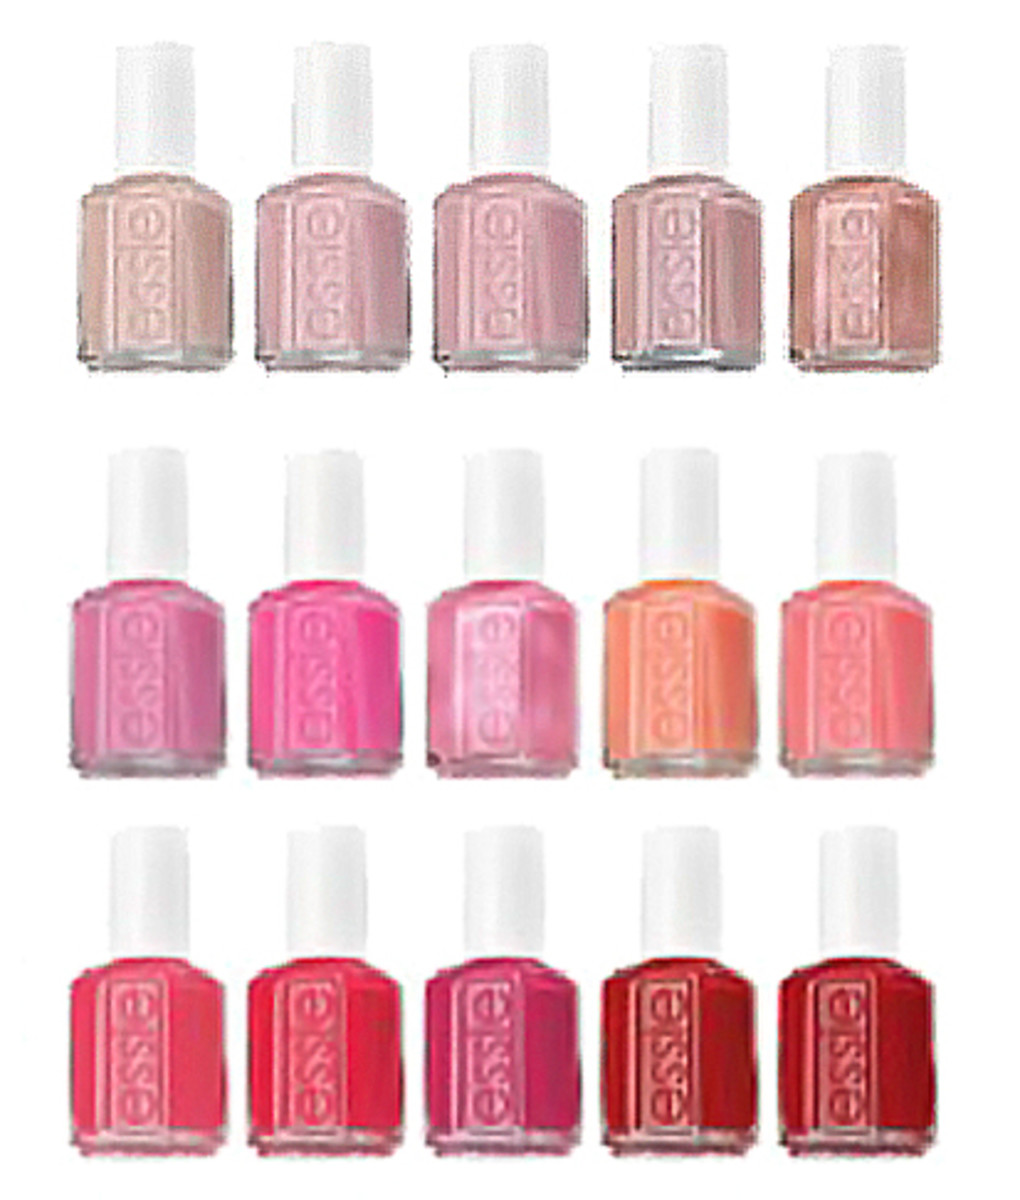 Essie Sugar Daddy 2014 Summer collection